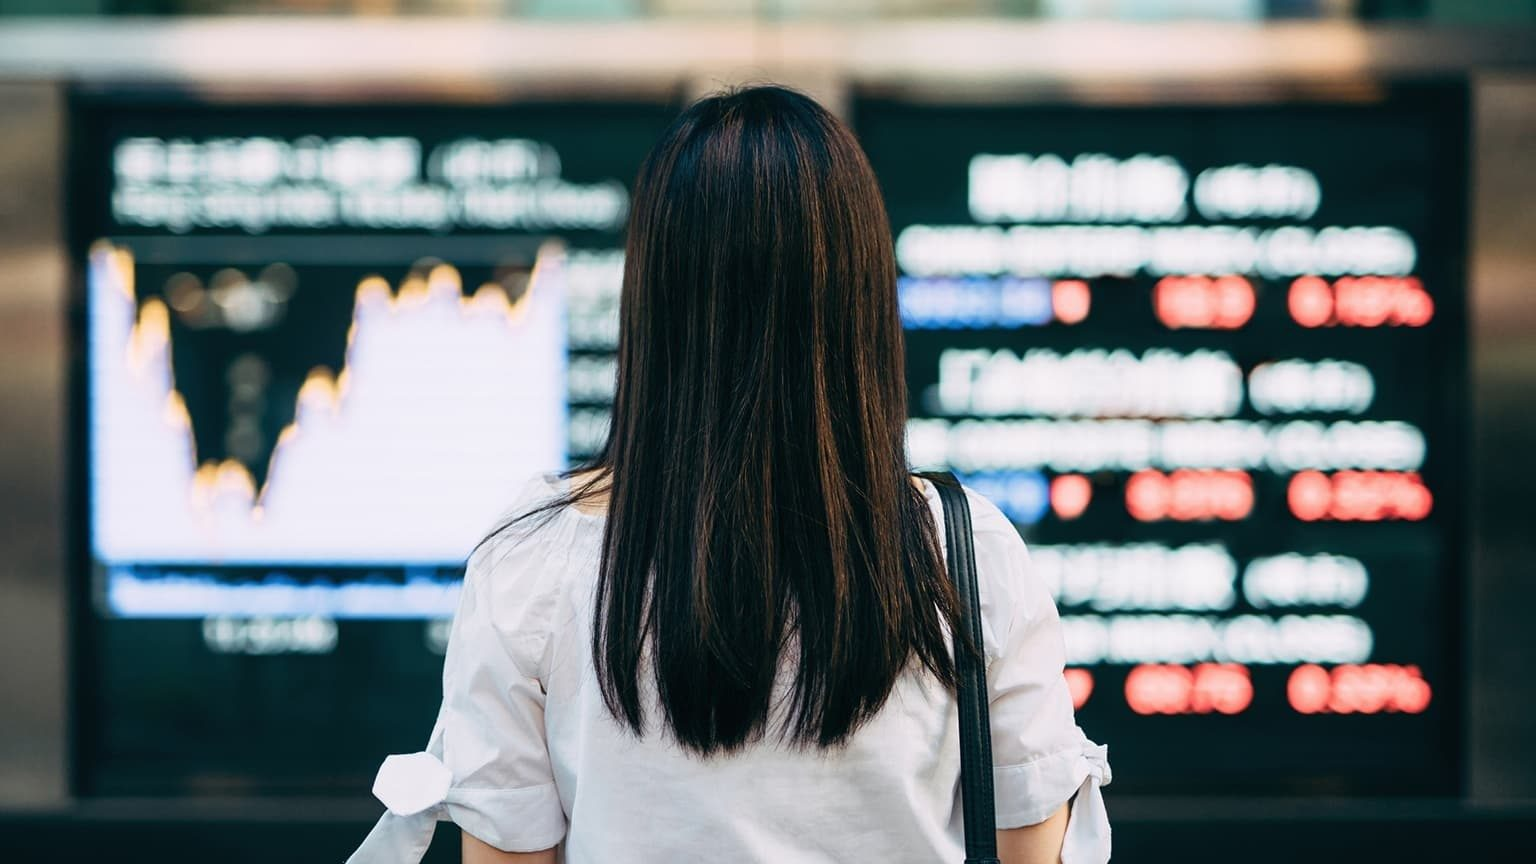 Rear view of businesswoman looking at stock exchange market display screen